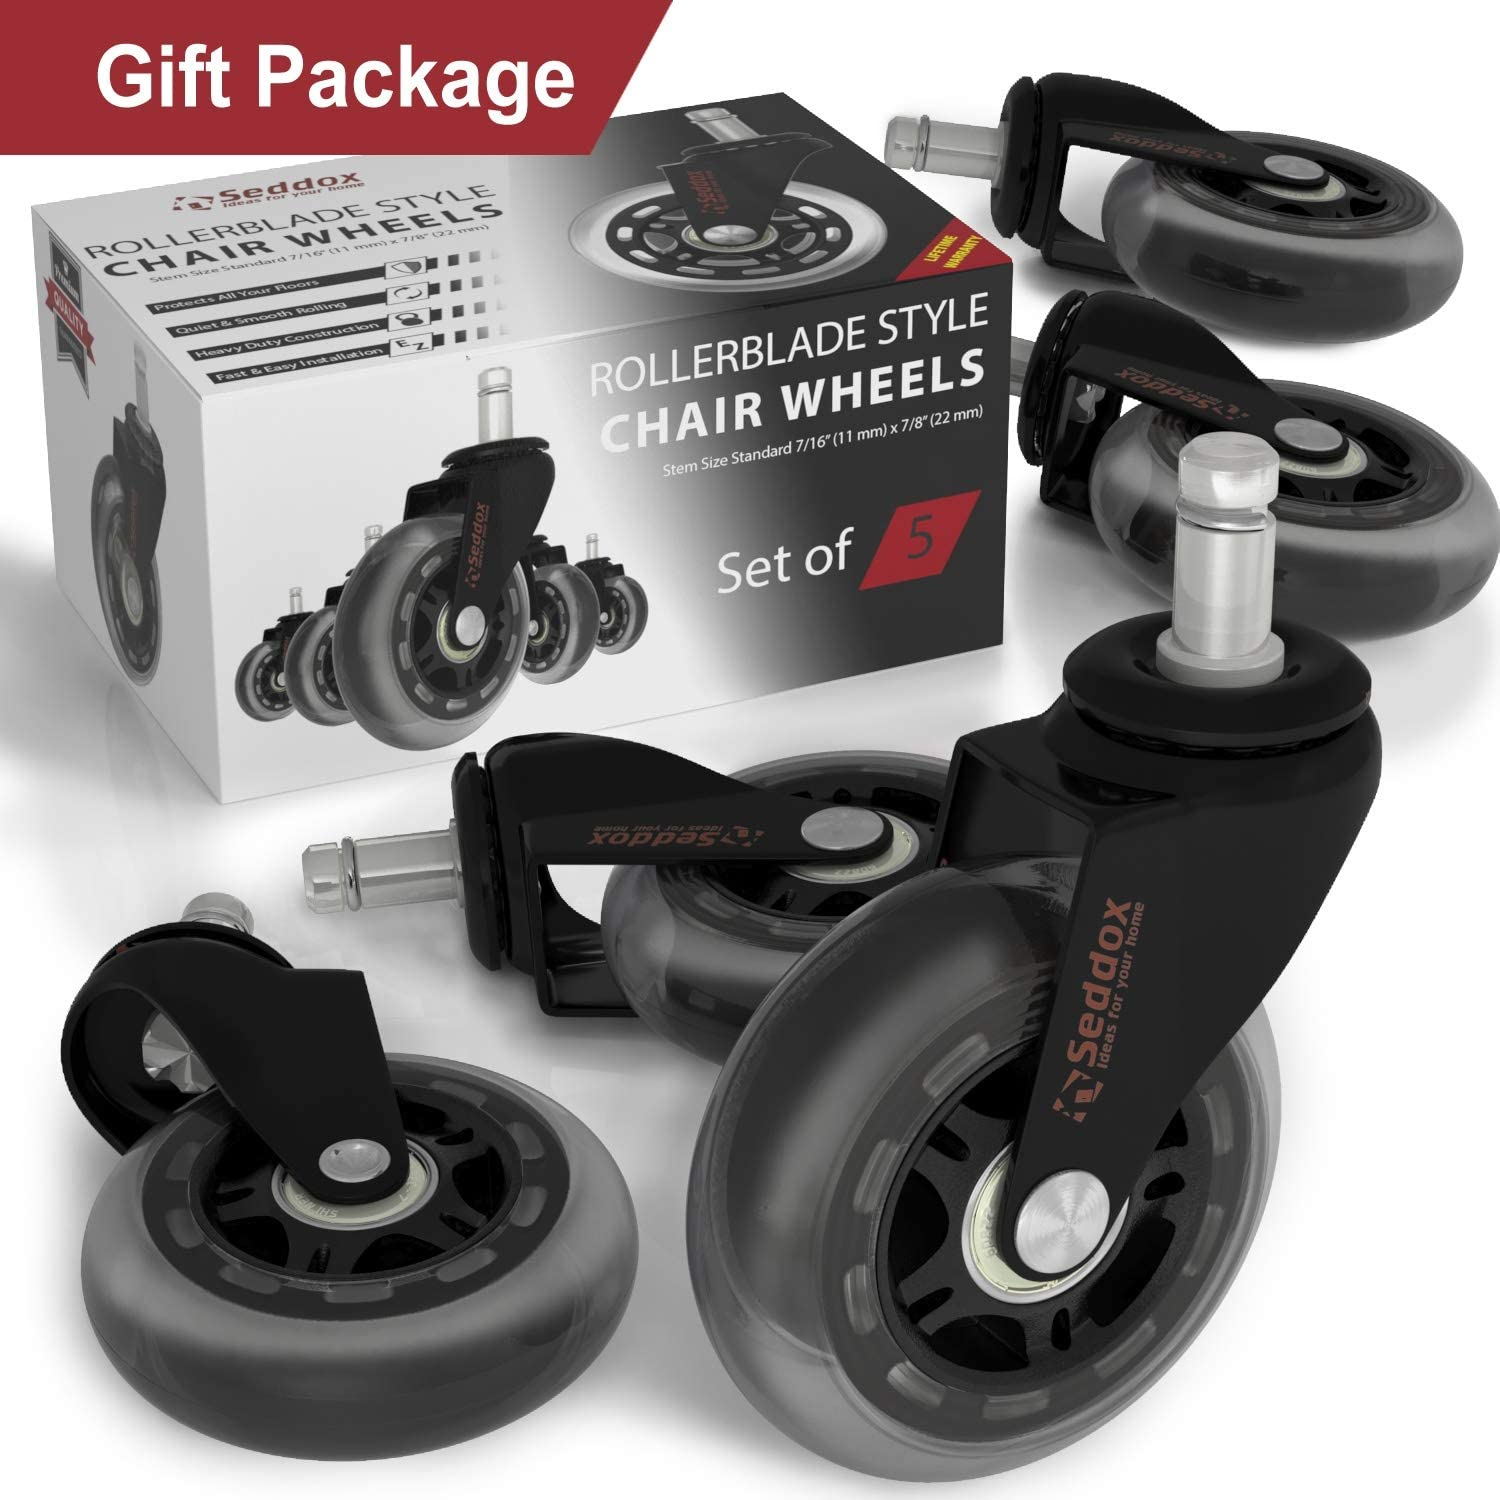 Professional Office Chair Caster Wheels Gift Set of 5 - Protect All Your Floors - 3'' Heavy Duty Replacement Rubber Desk Chair Casters - Best Protection for Your Hardwood Floors : Office Products